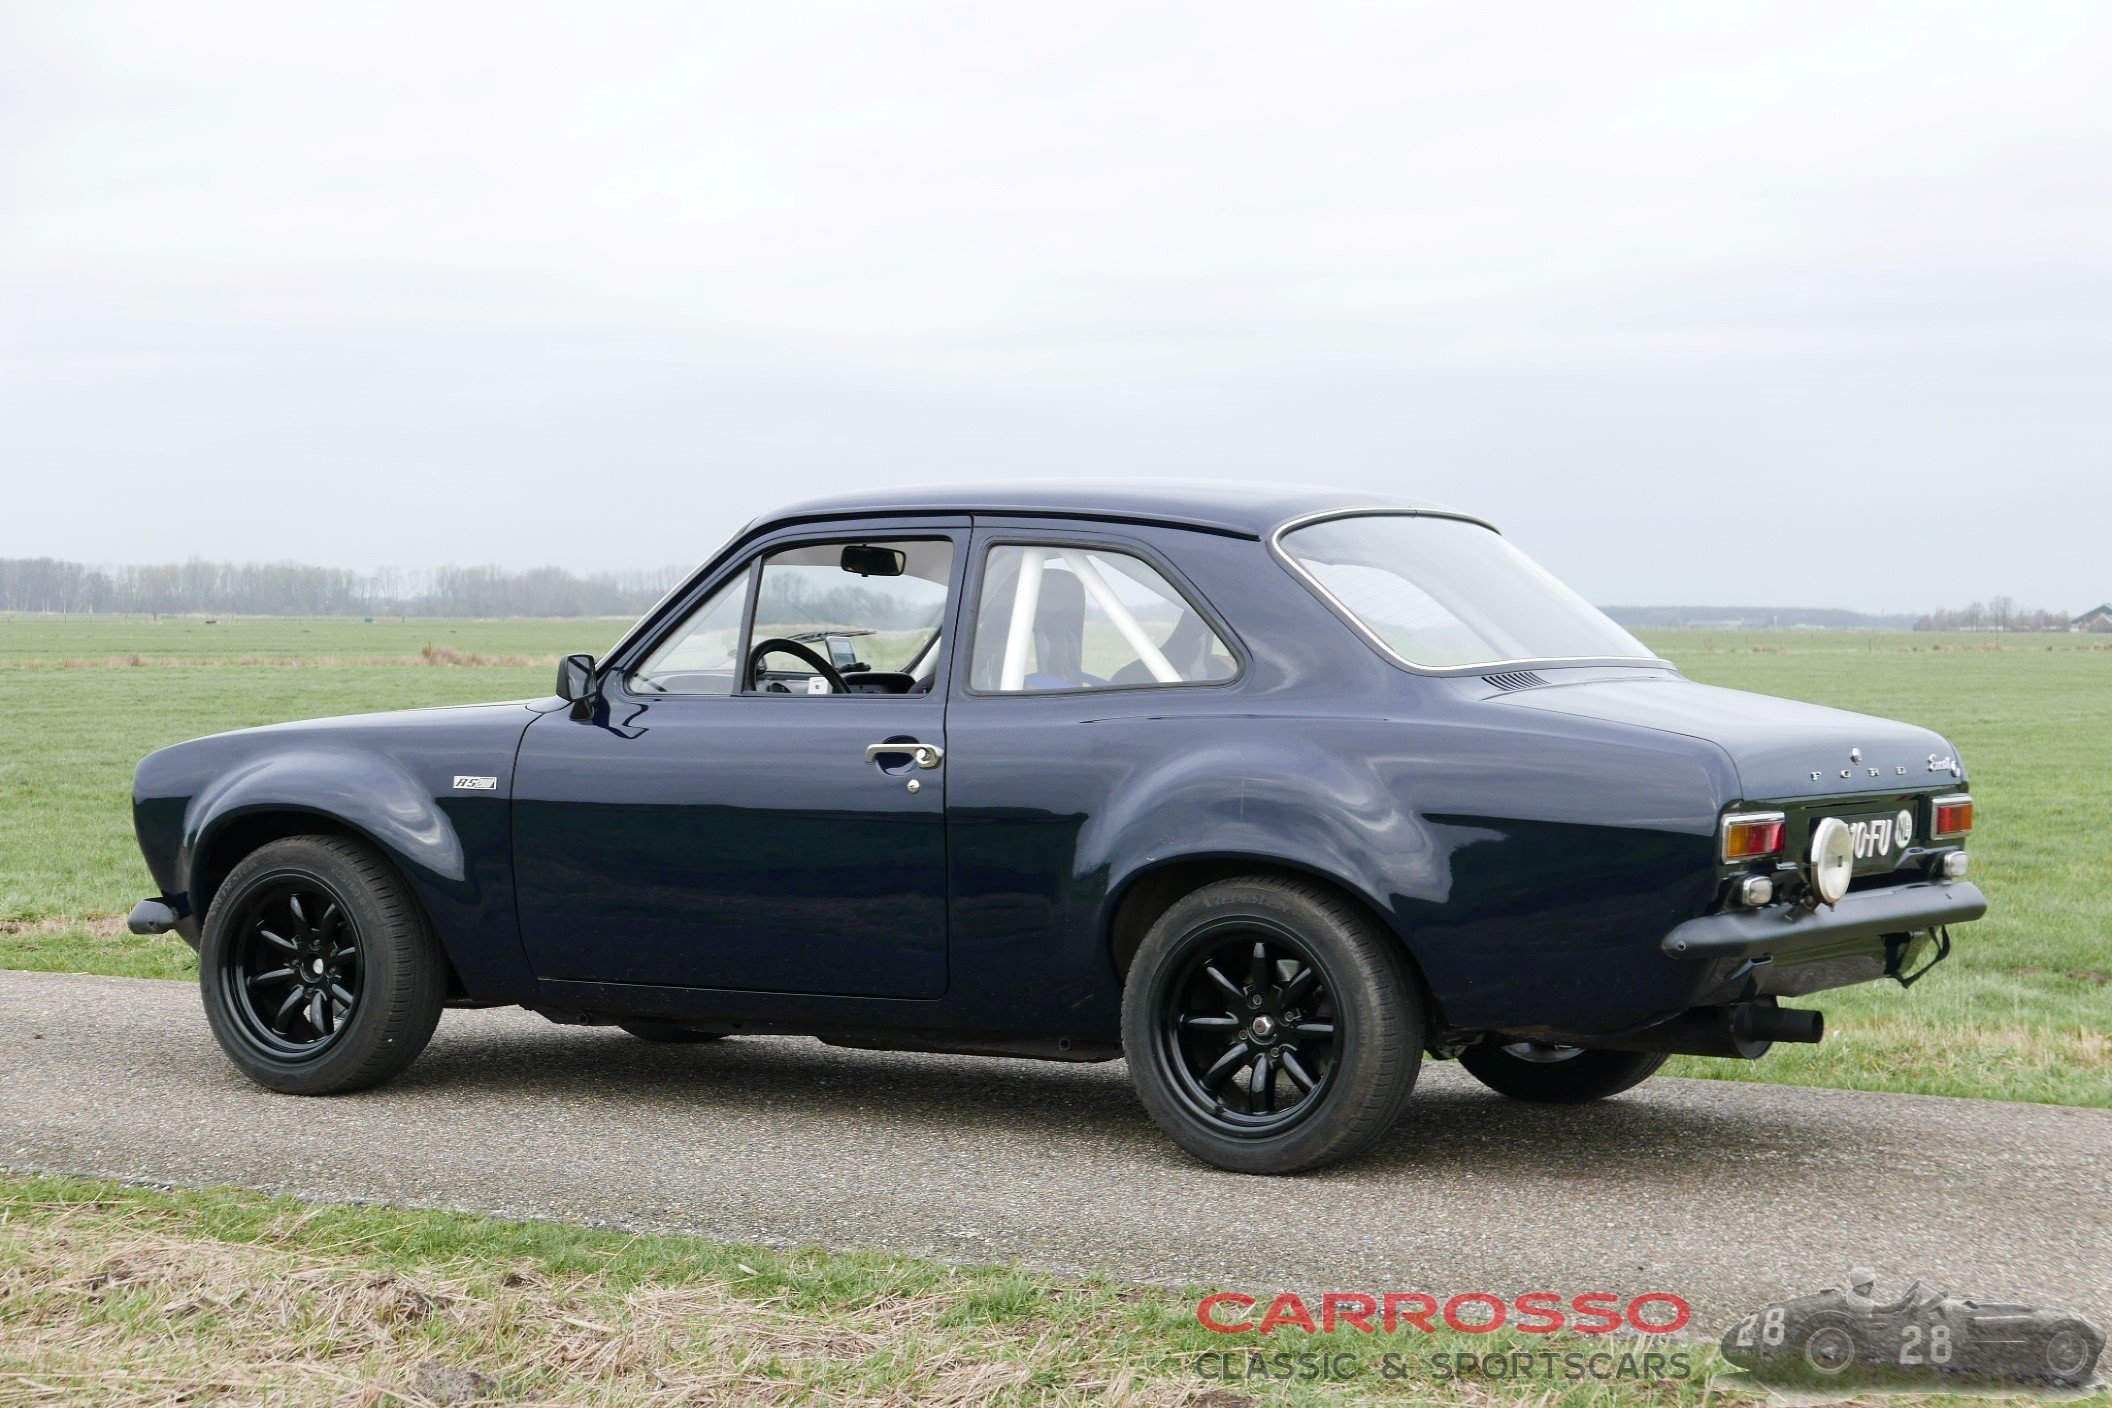 23Ford Escort Rally (58)